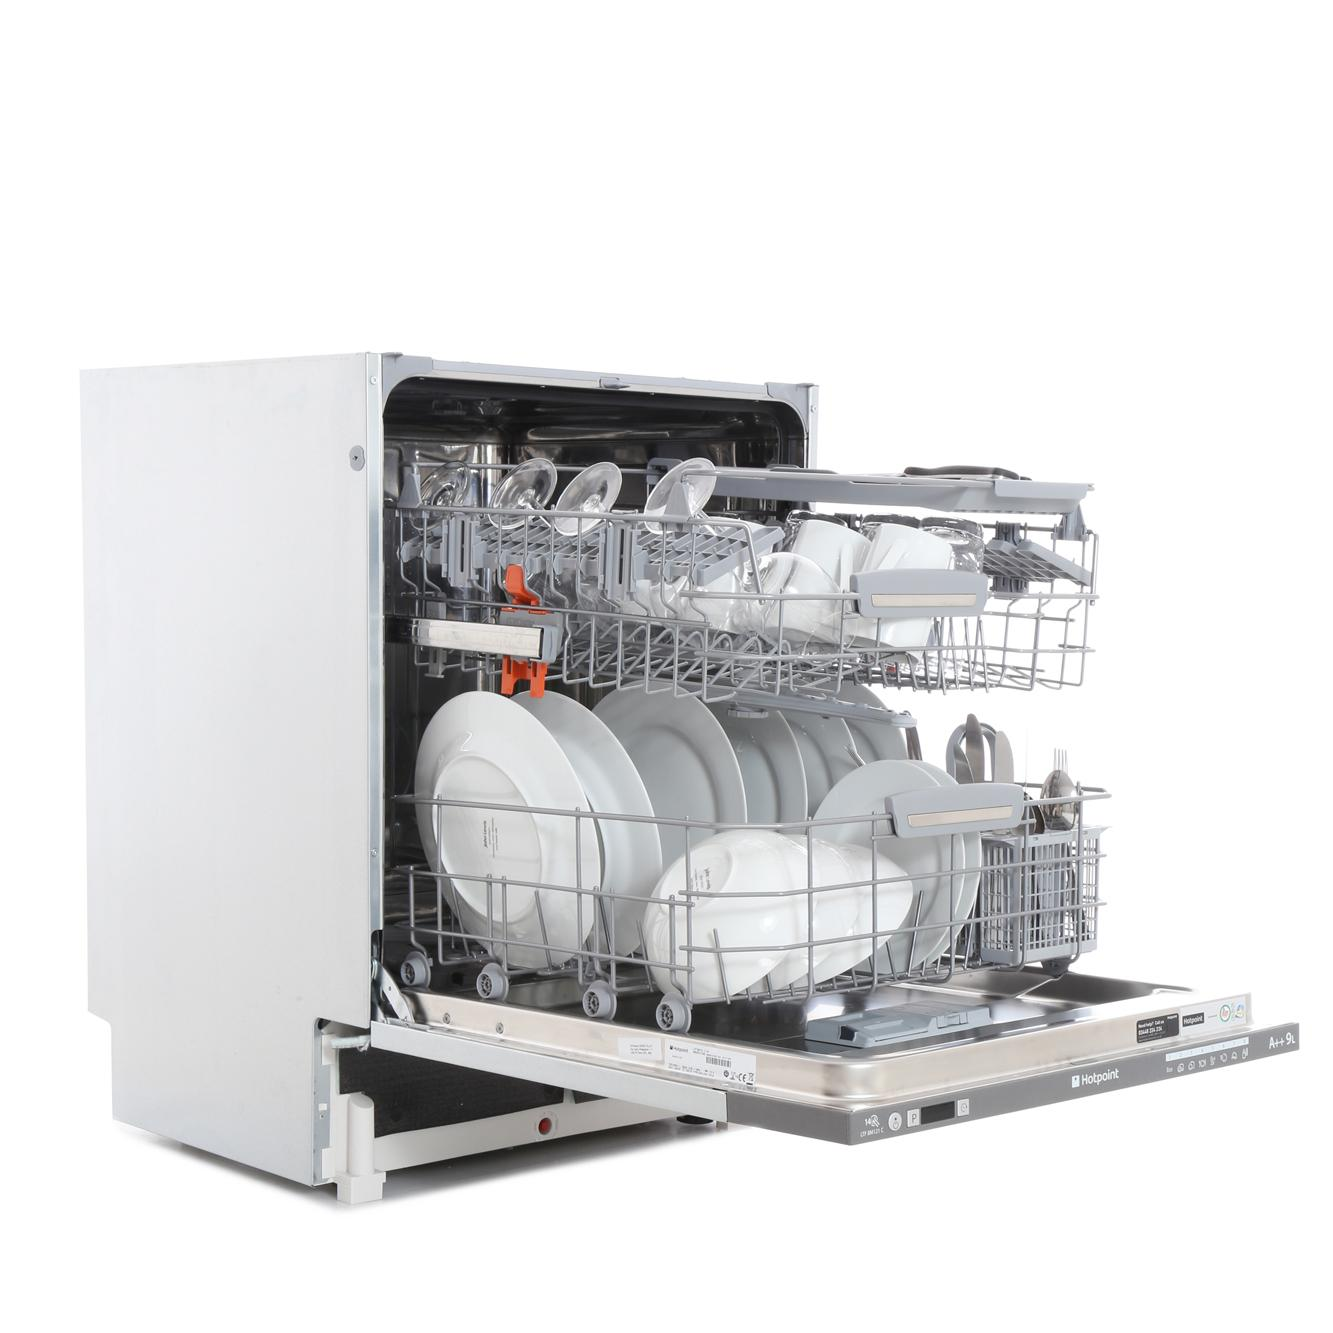 Small Dish Washer Hotpoint Ltf8m121c Built In Fully Integrated Dishwasher